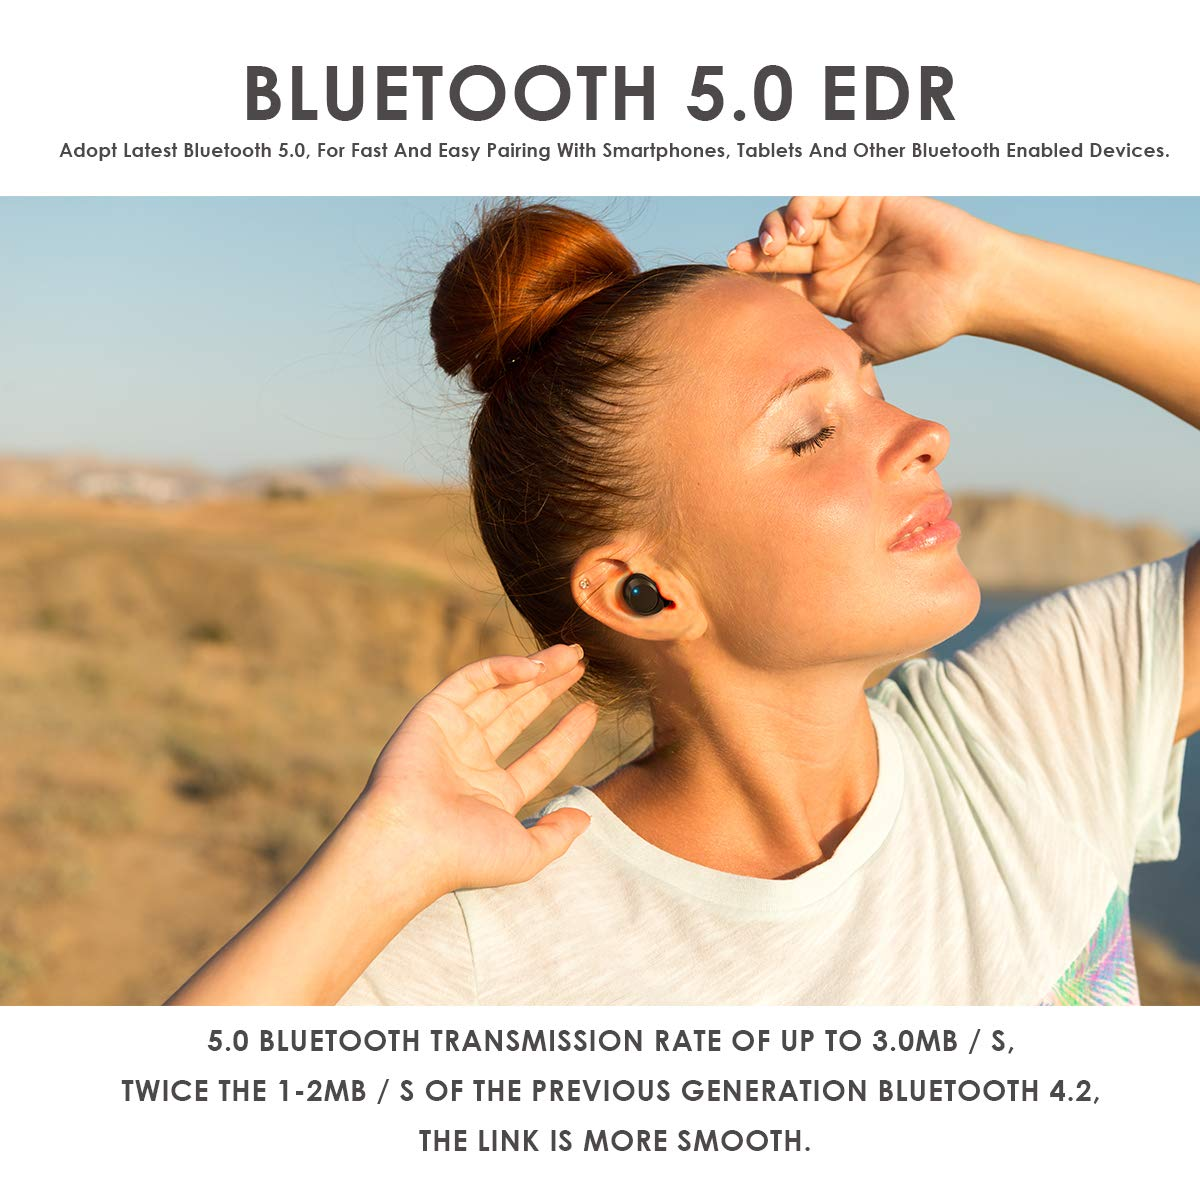 HOMVILLA Auricolari Bluetooth Cuffie Senza Fili, Wireless Stereo Sportivi in Ear Cuffie, Auricolari Bluetooth Playtime V5.0 60H Cuffie Wireless, Bassi Stereo Profondi Cuffie in-ear TWS per Android iOS